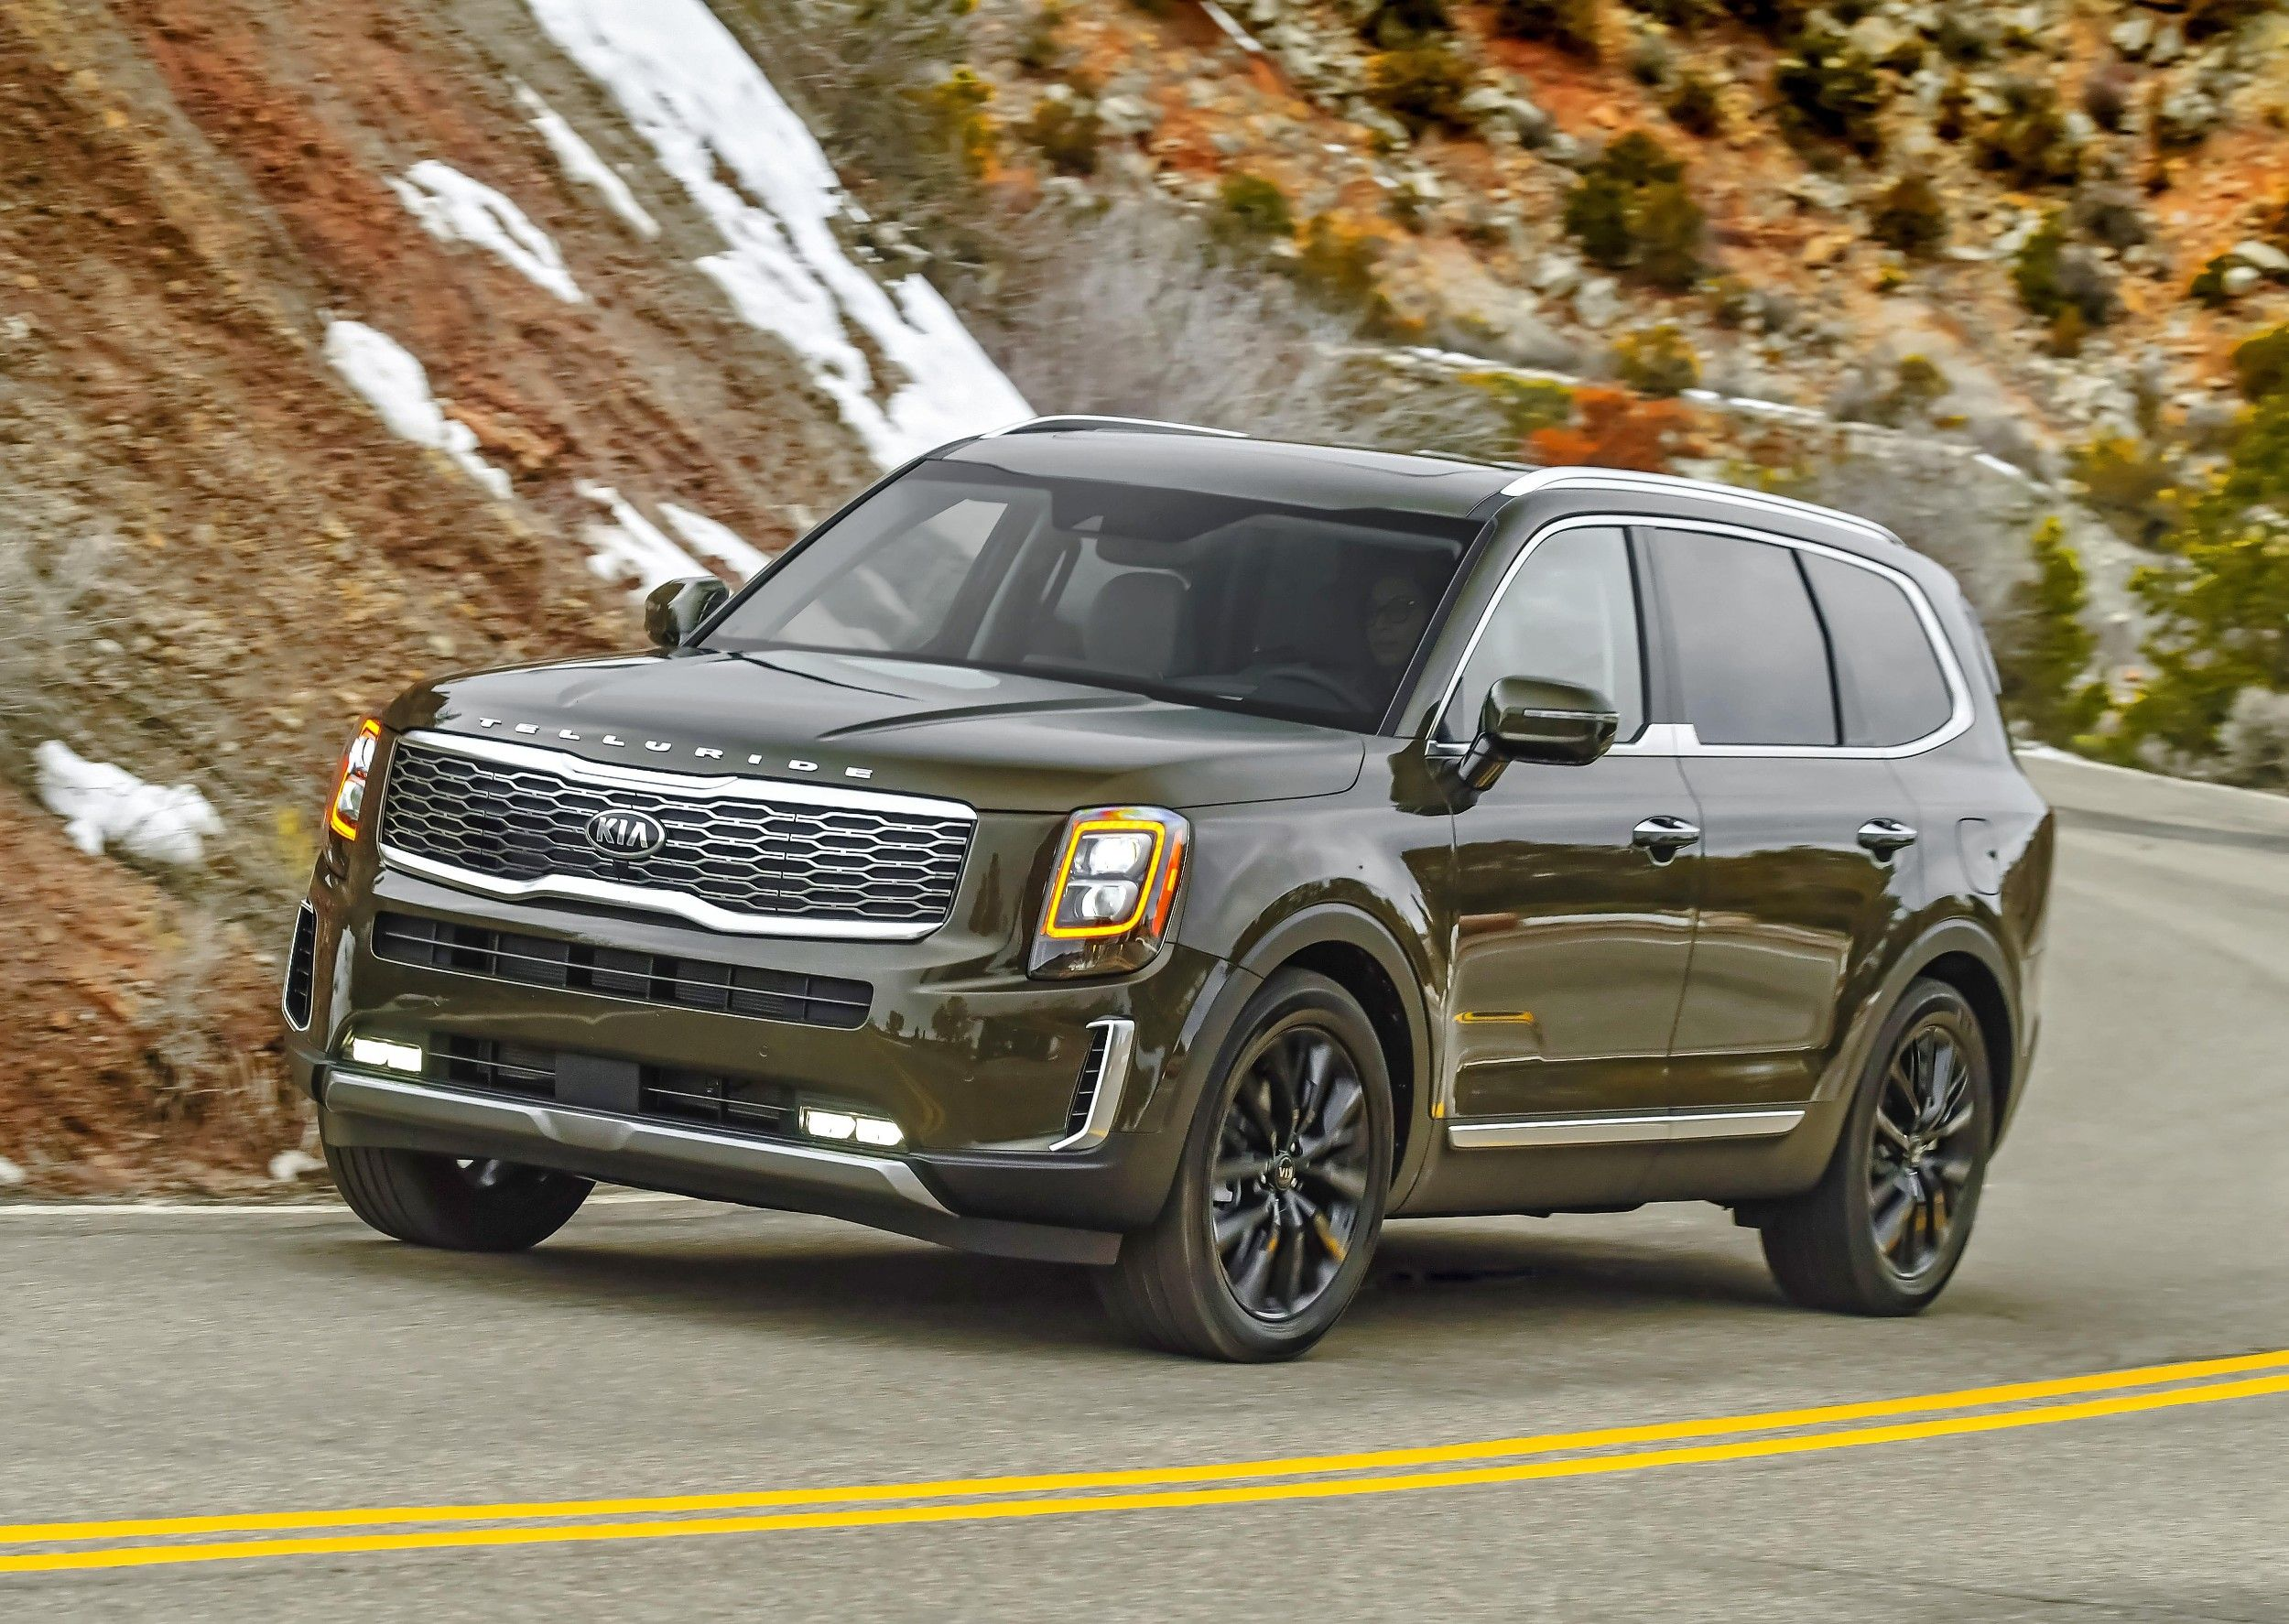 2020 Kia Telluride Review Ratings Specs Prices And Photos Kia Telluride Cars Kianaples Kia Telluride Car